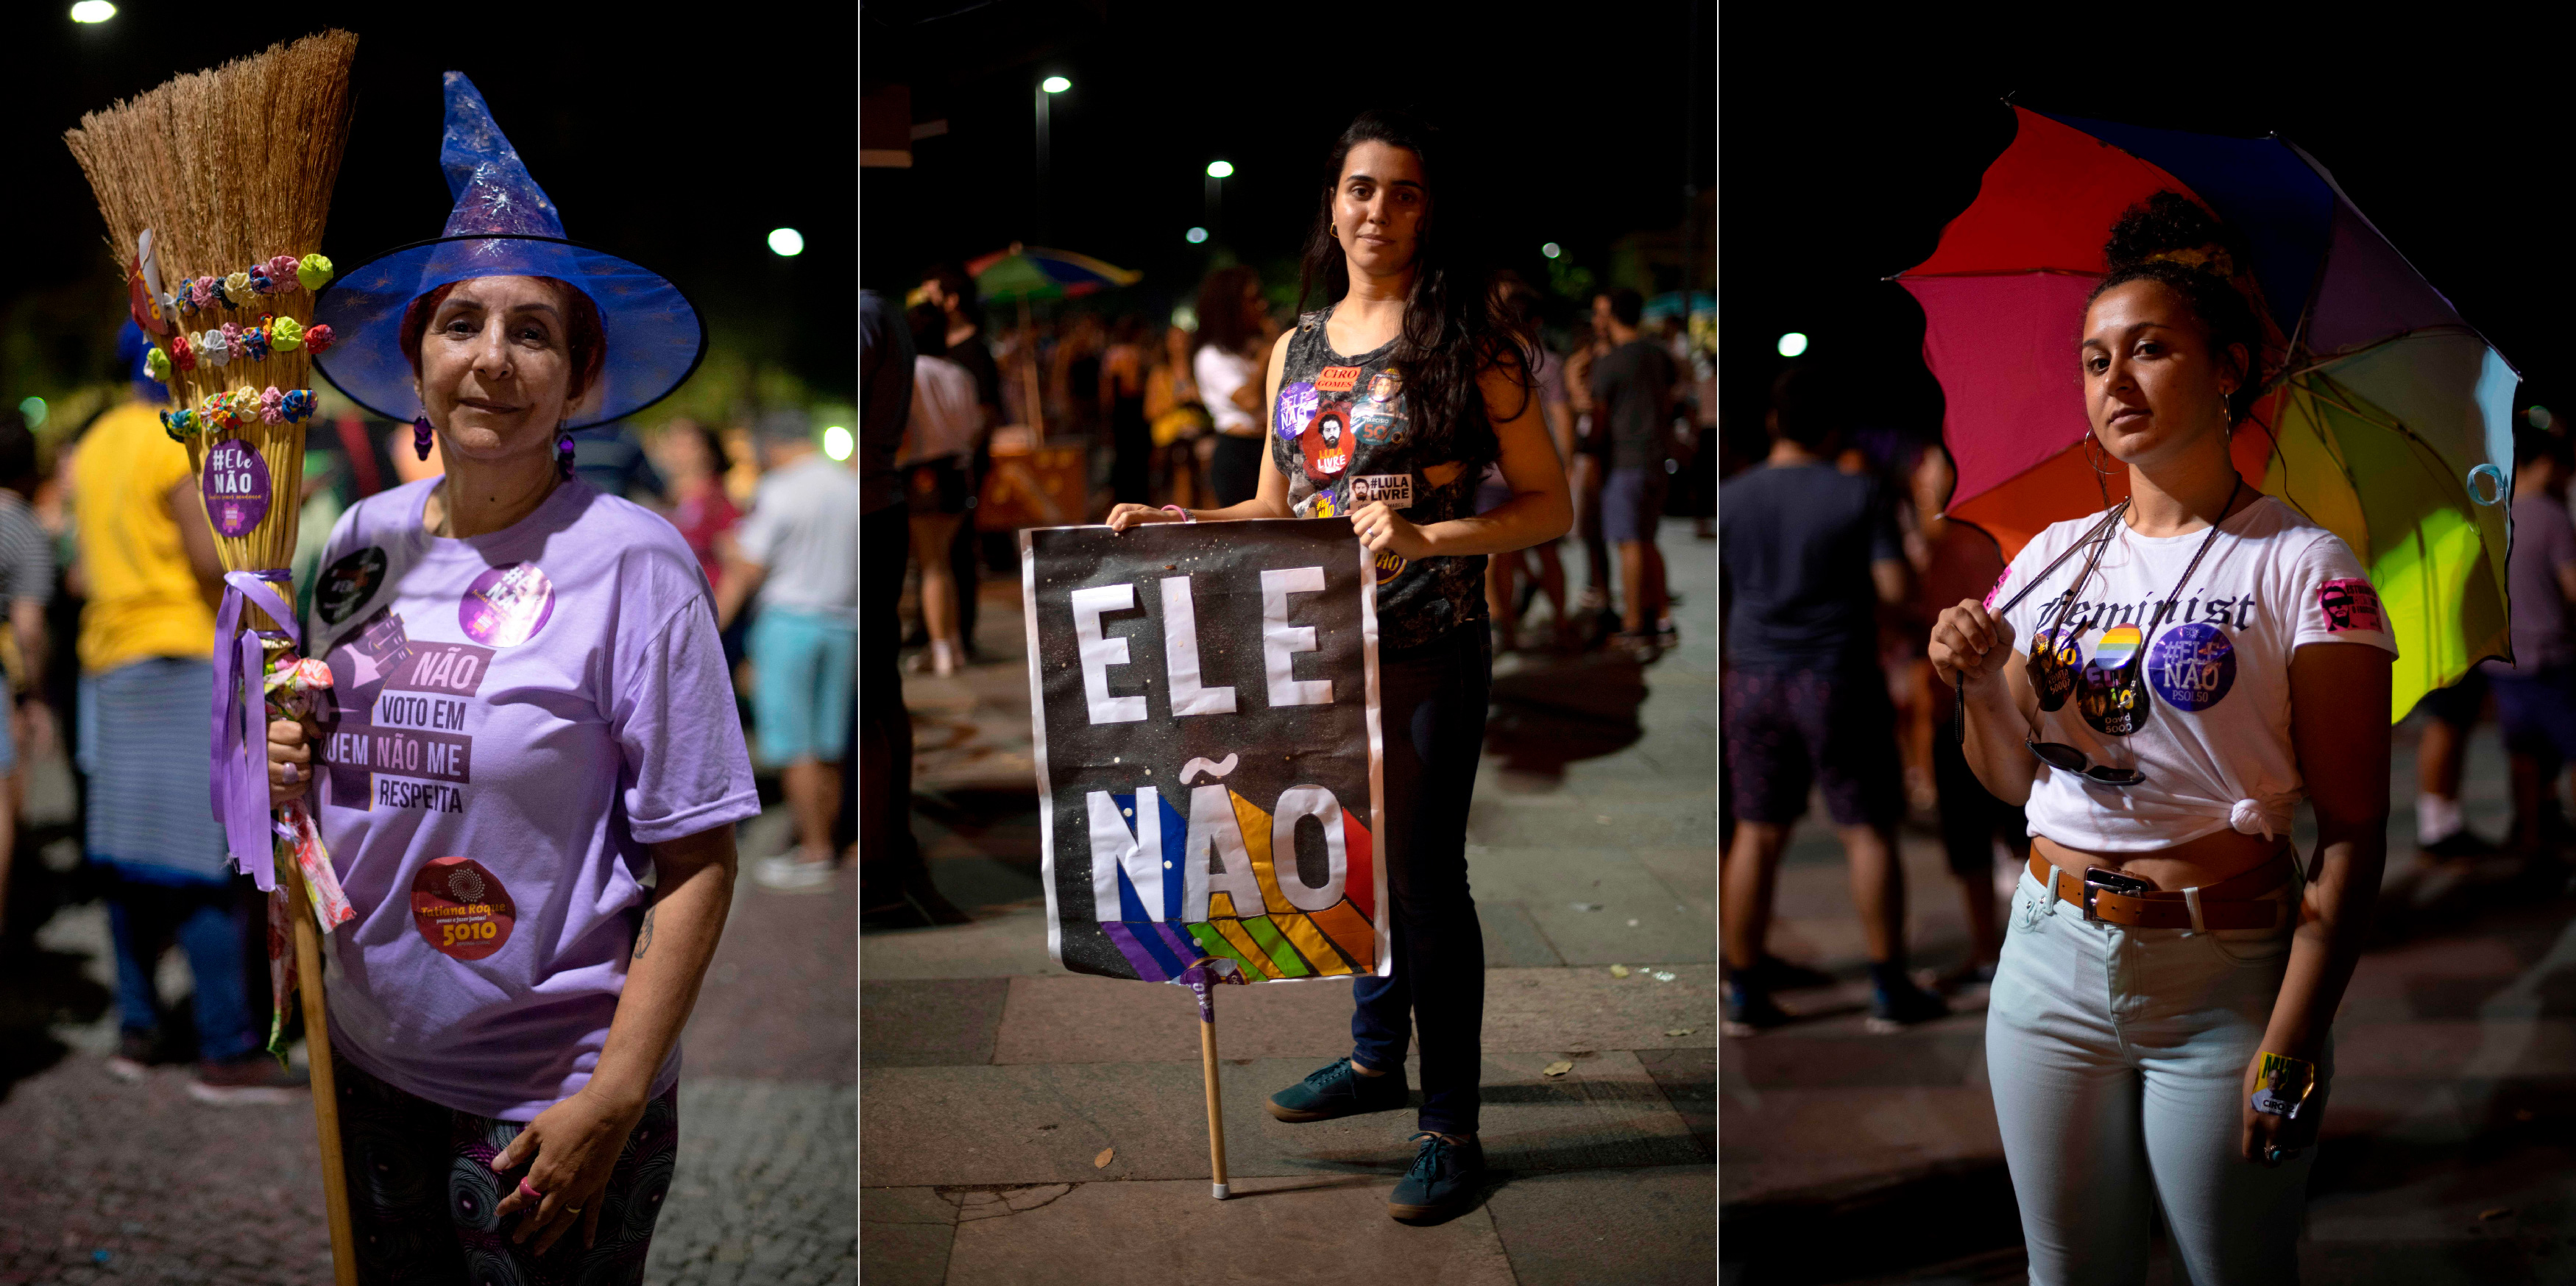 "Combo picture of Brazilian university professor Regina Dantas (L), 56, journalist Barbara Christie, 25, and biomedical technician Adriana Ribeiro (R), 25, posing for a portrait during a demonstration against Brazilian right-wing presidential candidate Jair Bolsonaro called by a social media campaign under the hashtag #EleNao (Not Him), in Rio de Janeiro, Brazil, on September 29, 2018. - AFP asked Dantas, Christie and Ribeiro why ""not him"". Their respective answers were: ""Not him because we will lose our achievments related to feminist struggles,"" ""Not him because he is sexist, misogynist and homophobic"" and ""Not him because he does not represent who I am, a lesbian and a woman."" (Photo by Mauro Pimentel / AFP)        (Photo credit should read MAURO PIMENTEL/AFP/Getty Images)"